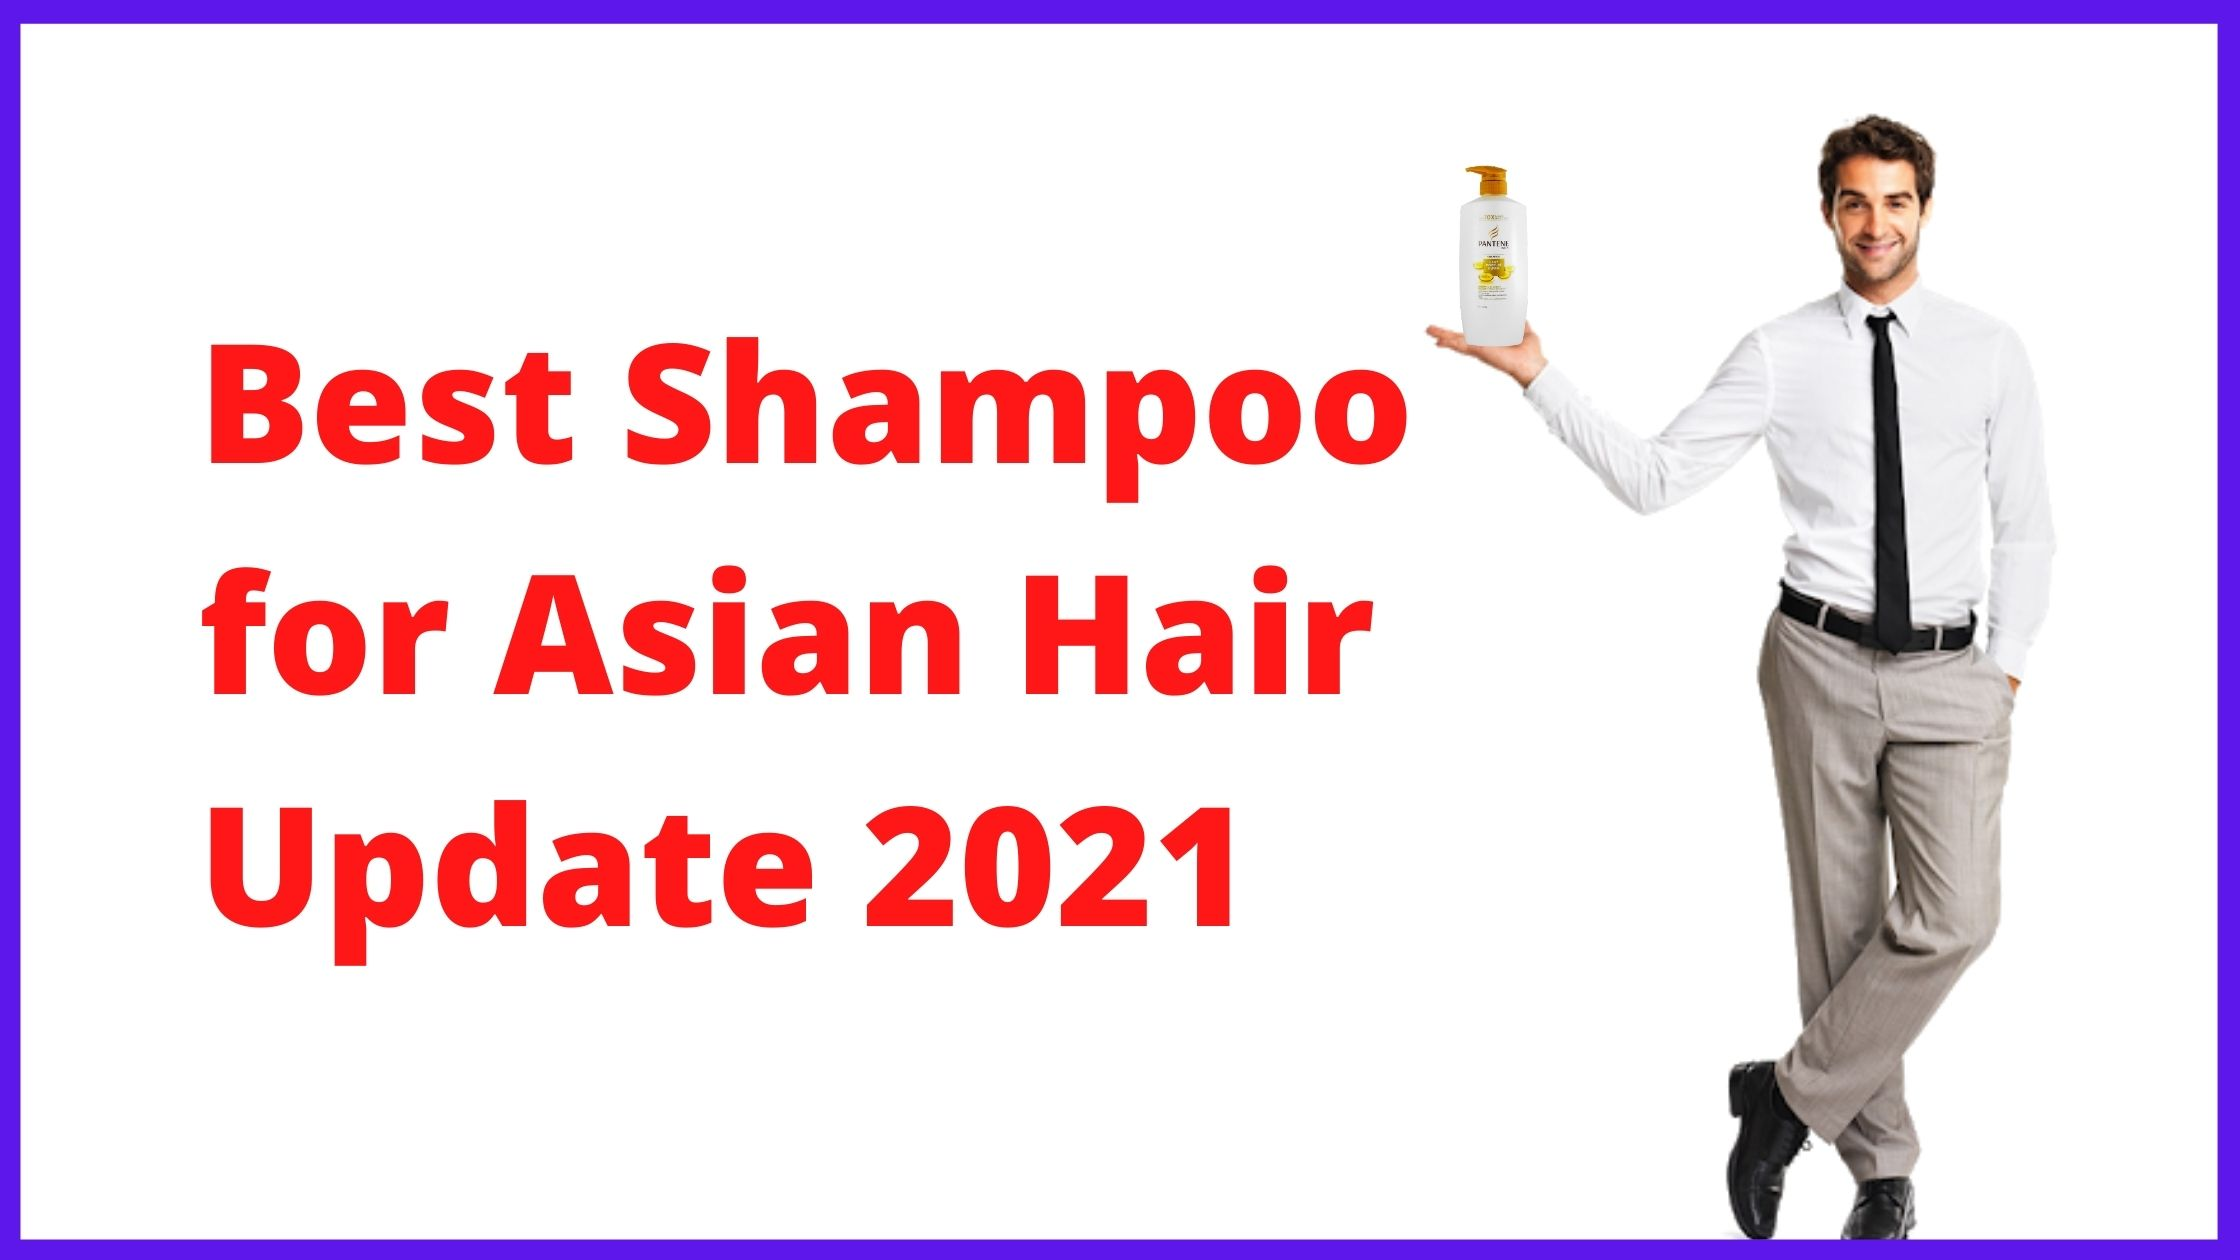 The Best Shampoo for Asian Hair Update Reviews 2021